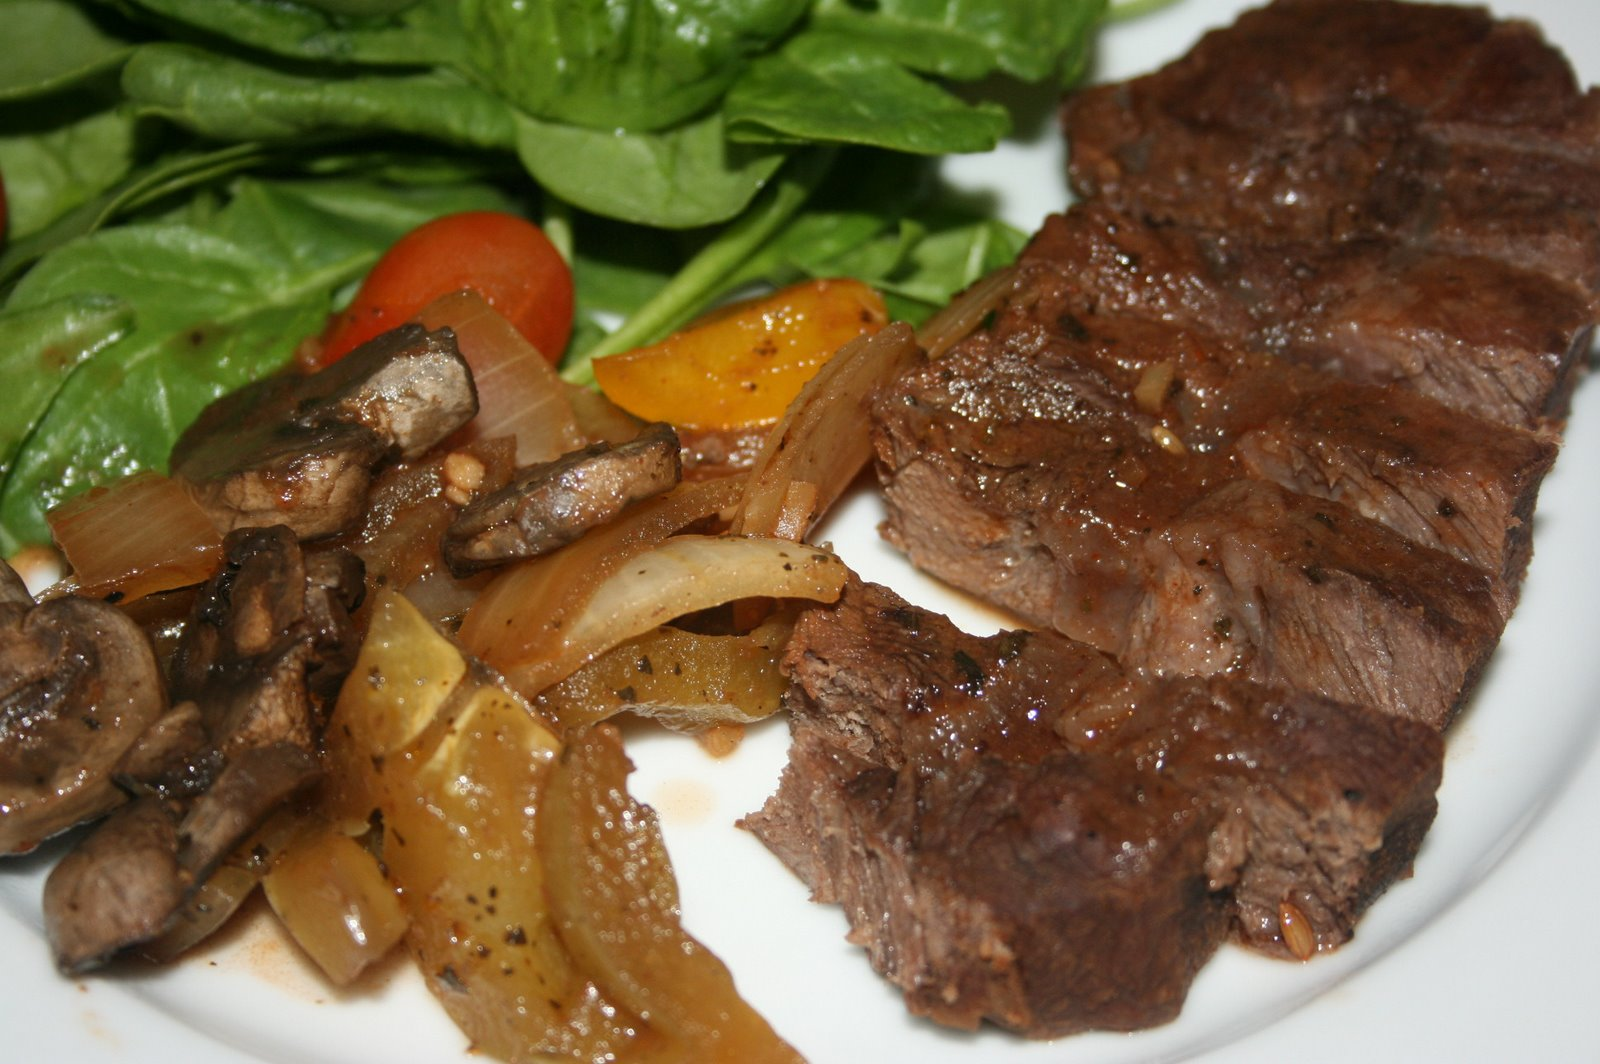 Spectacular Brown Rice How To Cook Brown Rice Peppercorn Steak Made In The Crockpot  Slow Cooker